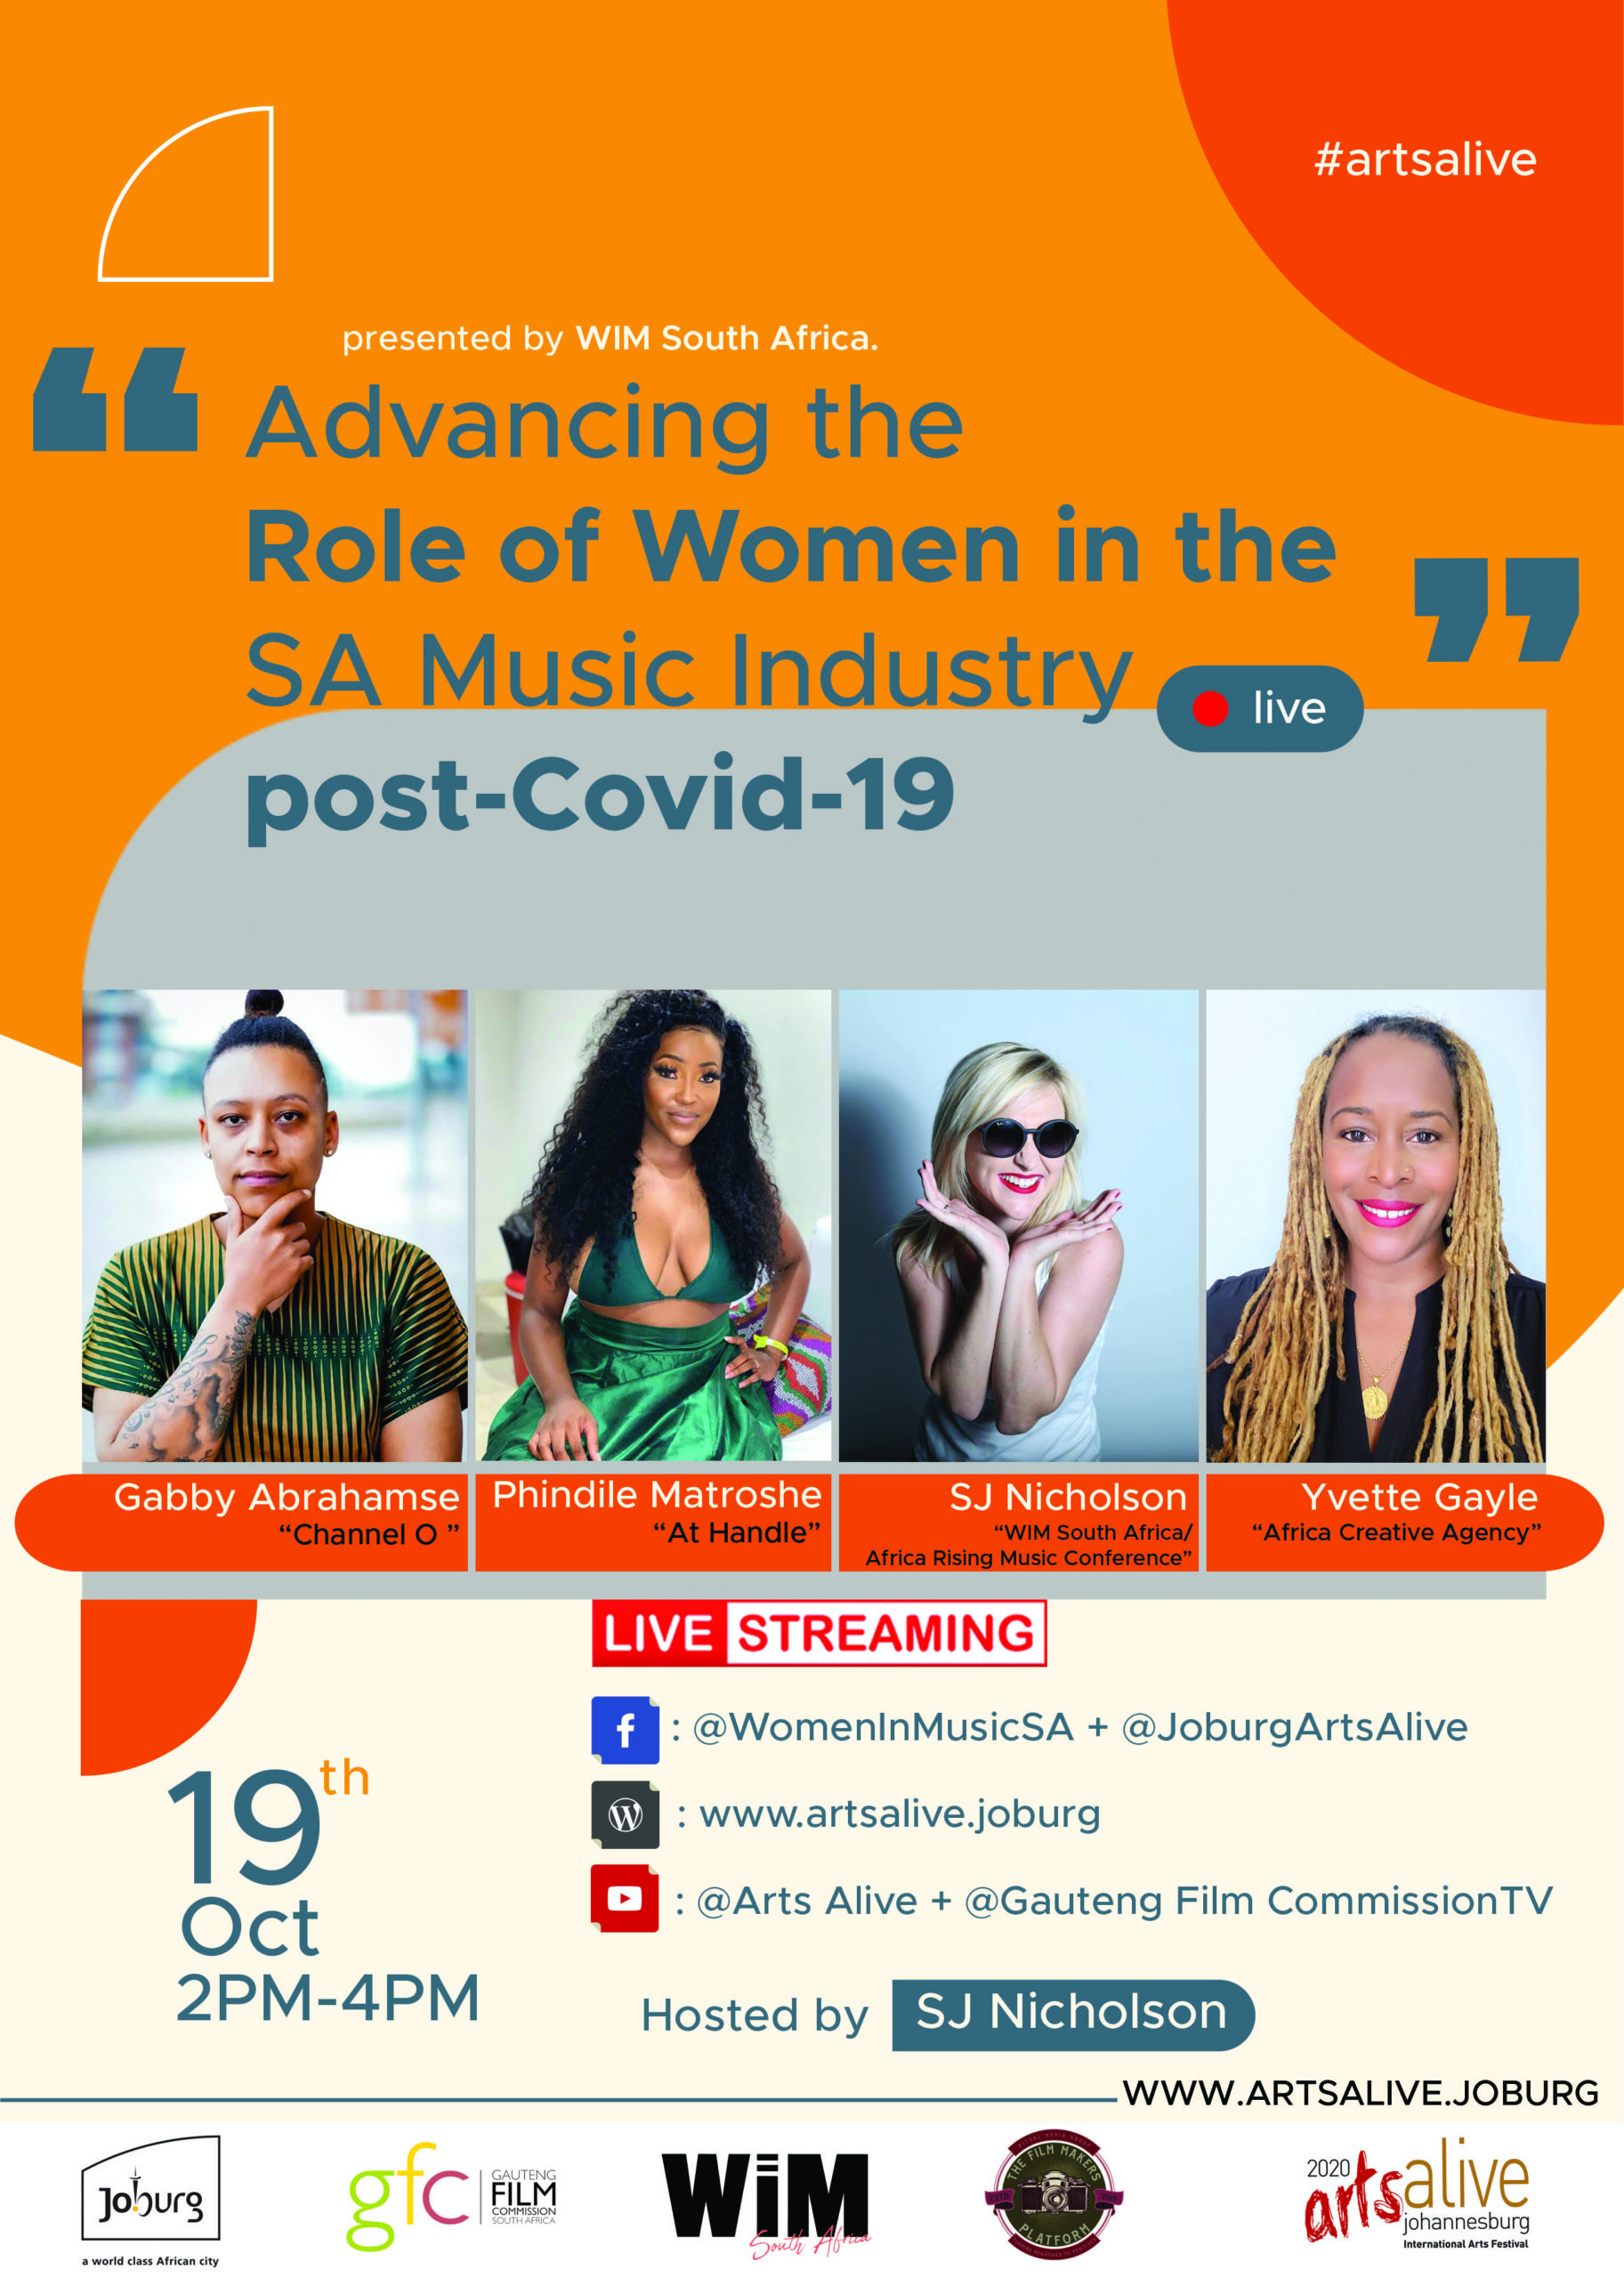 ADVANCING THE ROLE OF WOMEN IN THE SA MUSIC INDUSTRY POST-COVID19